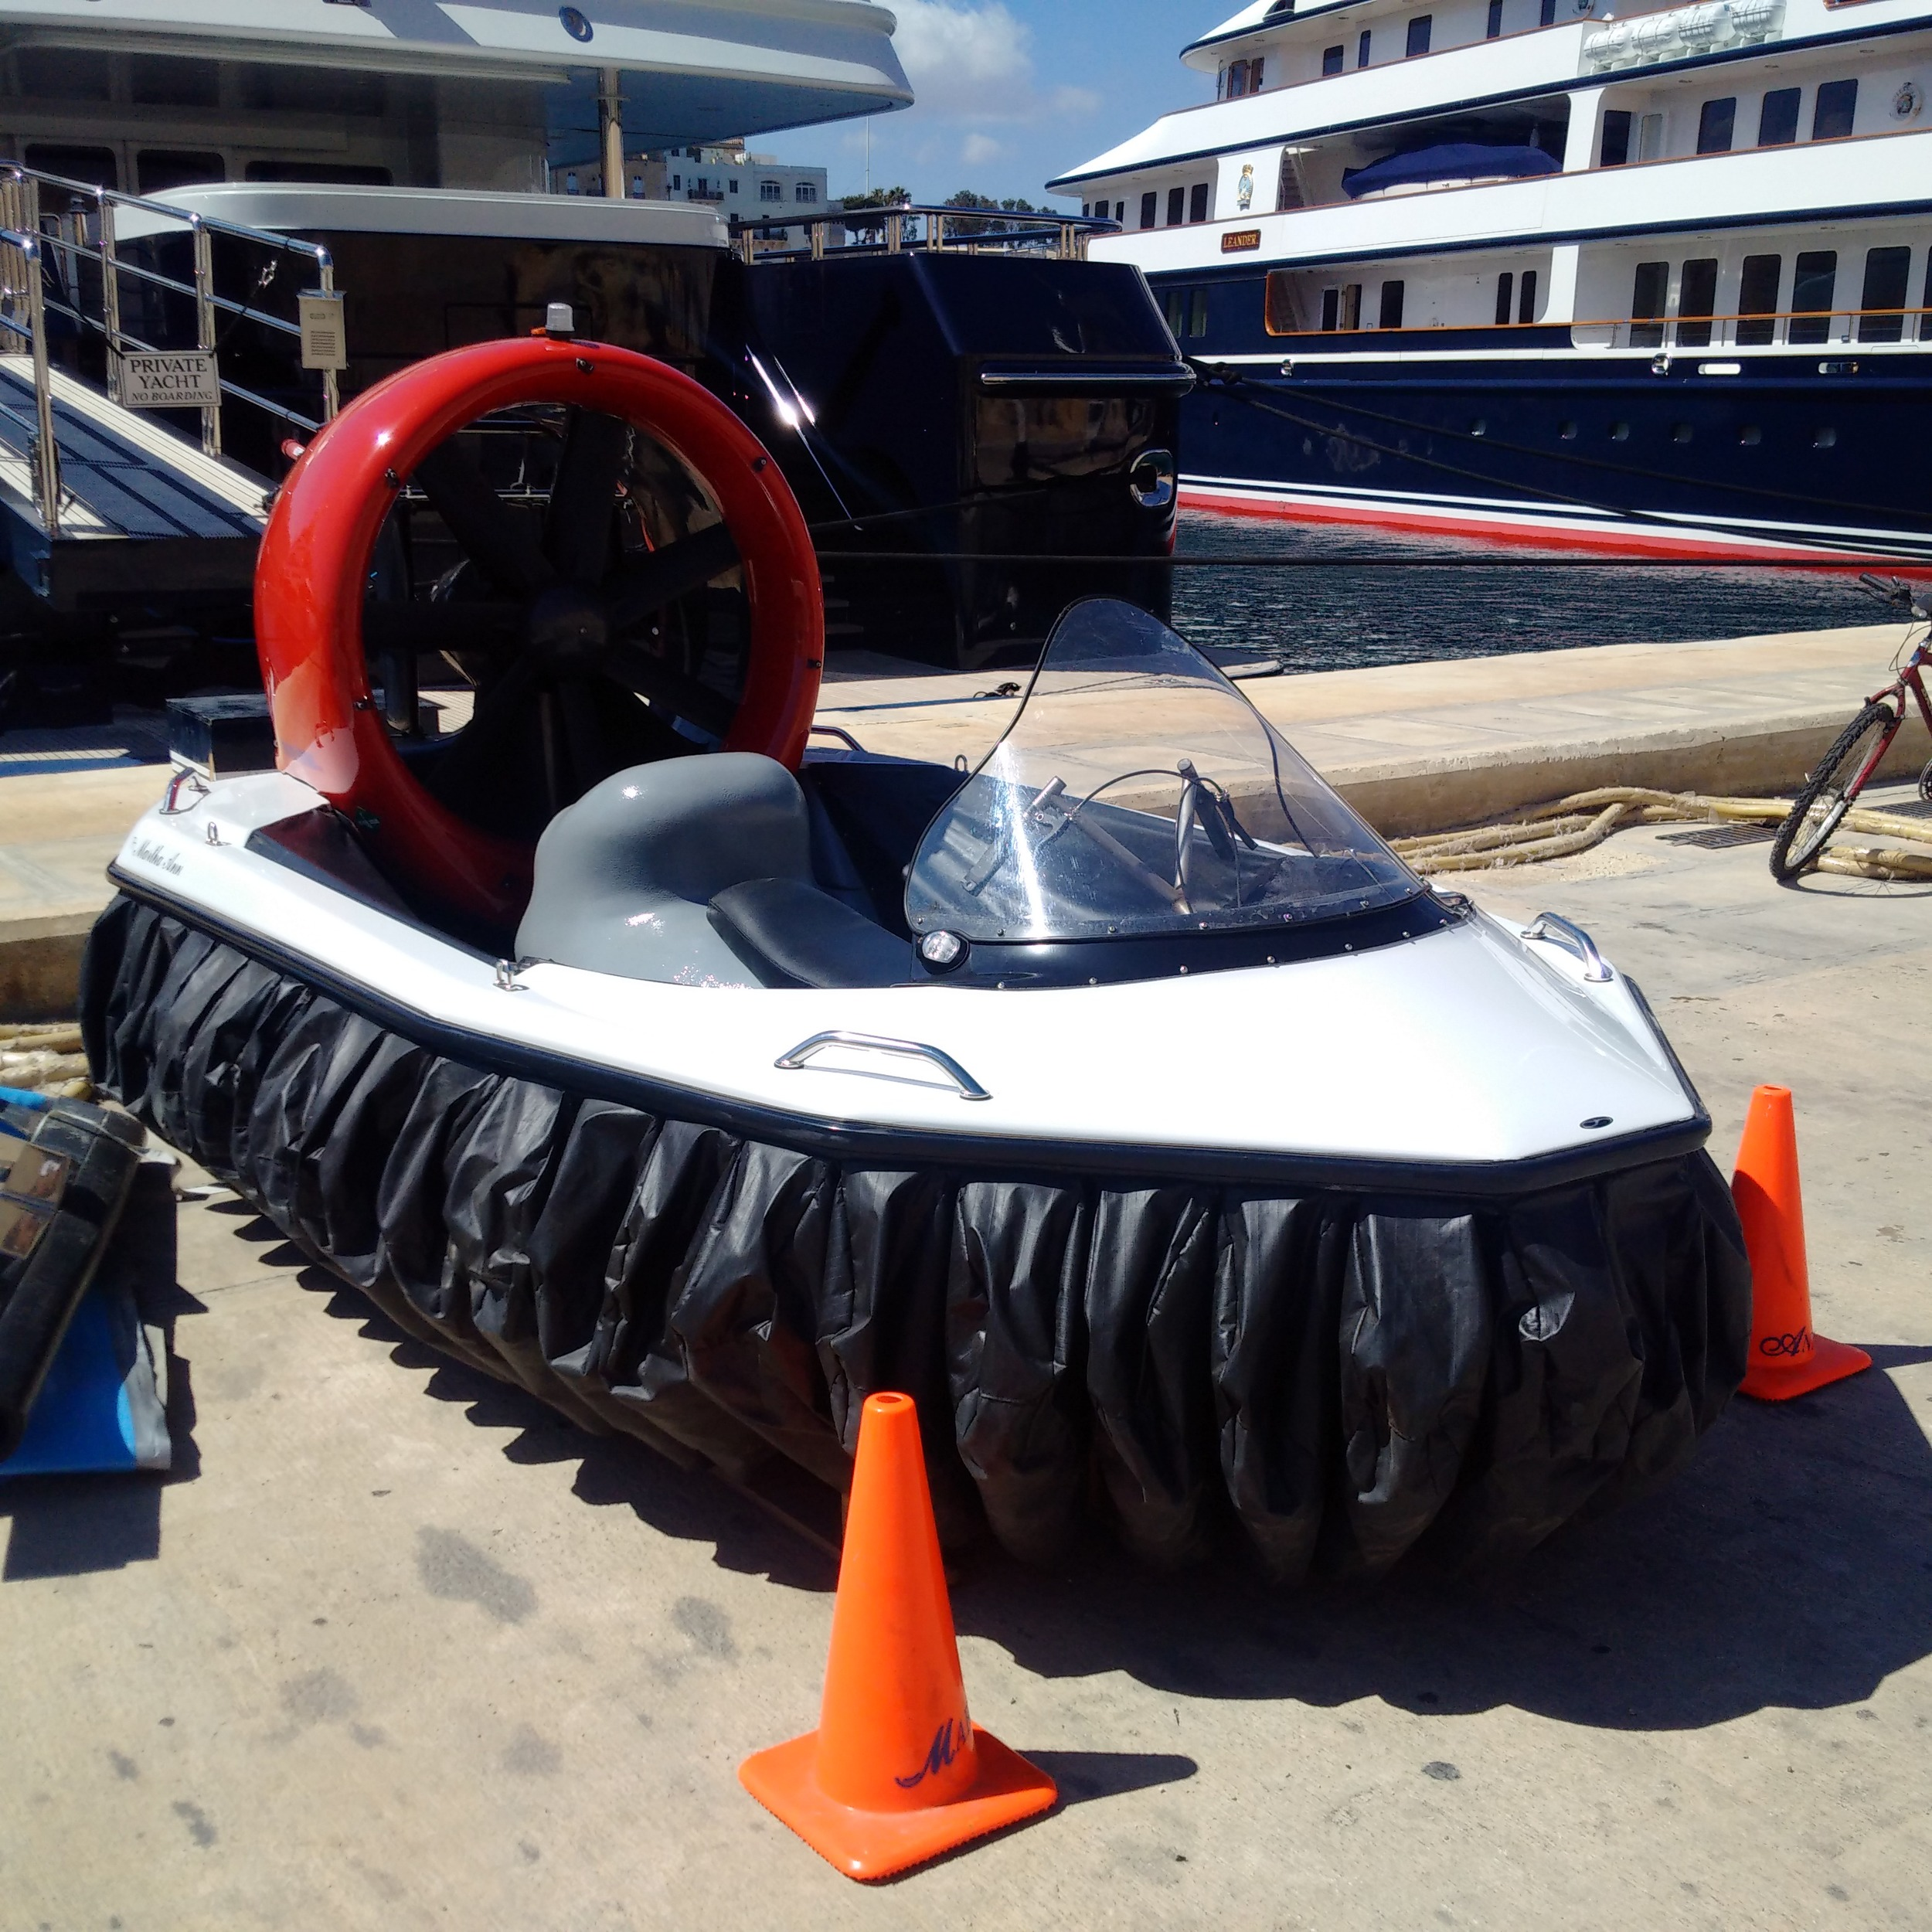 A Renegade IQ Hovercraft in the marina in Cospicua.